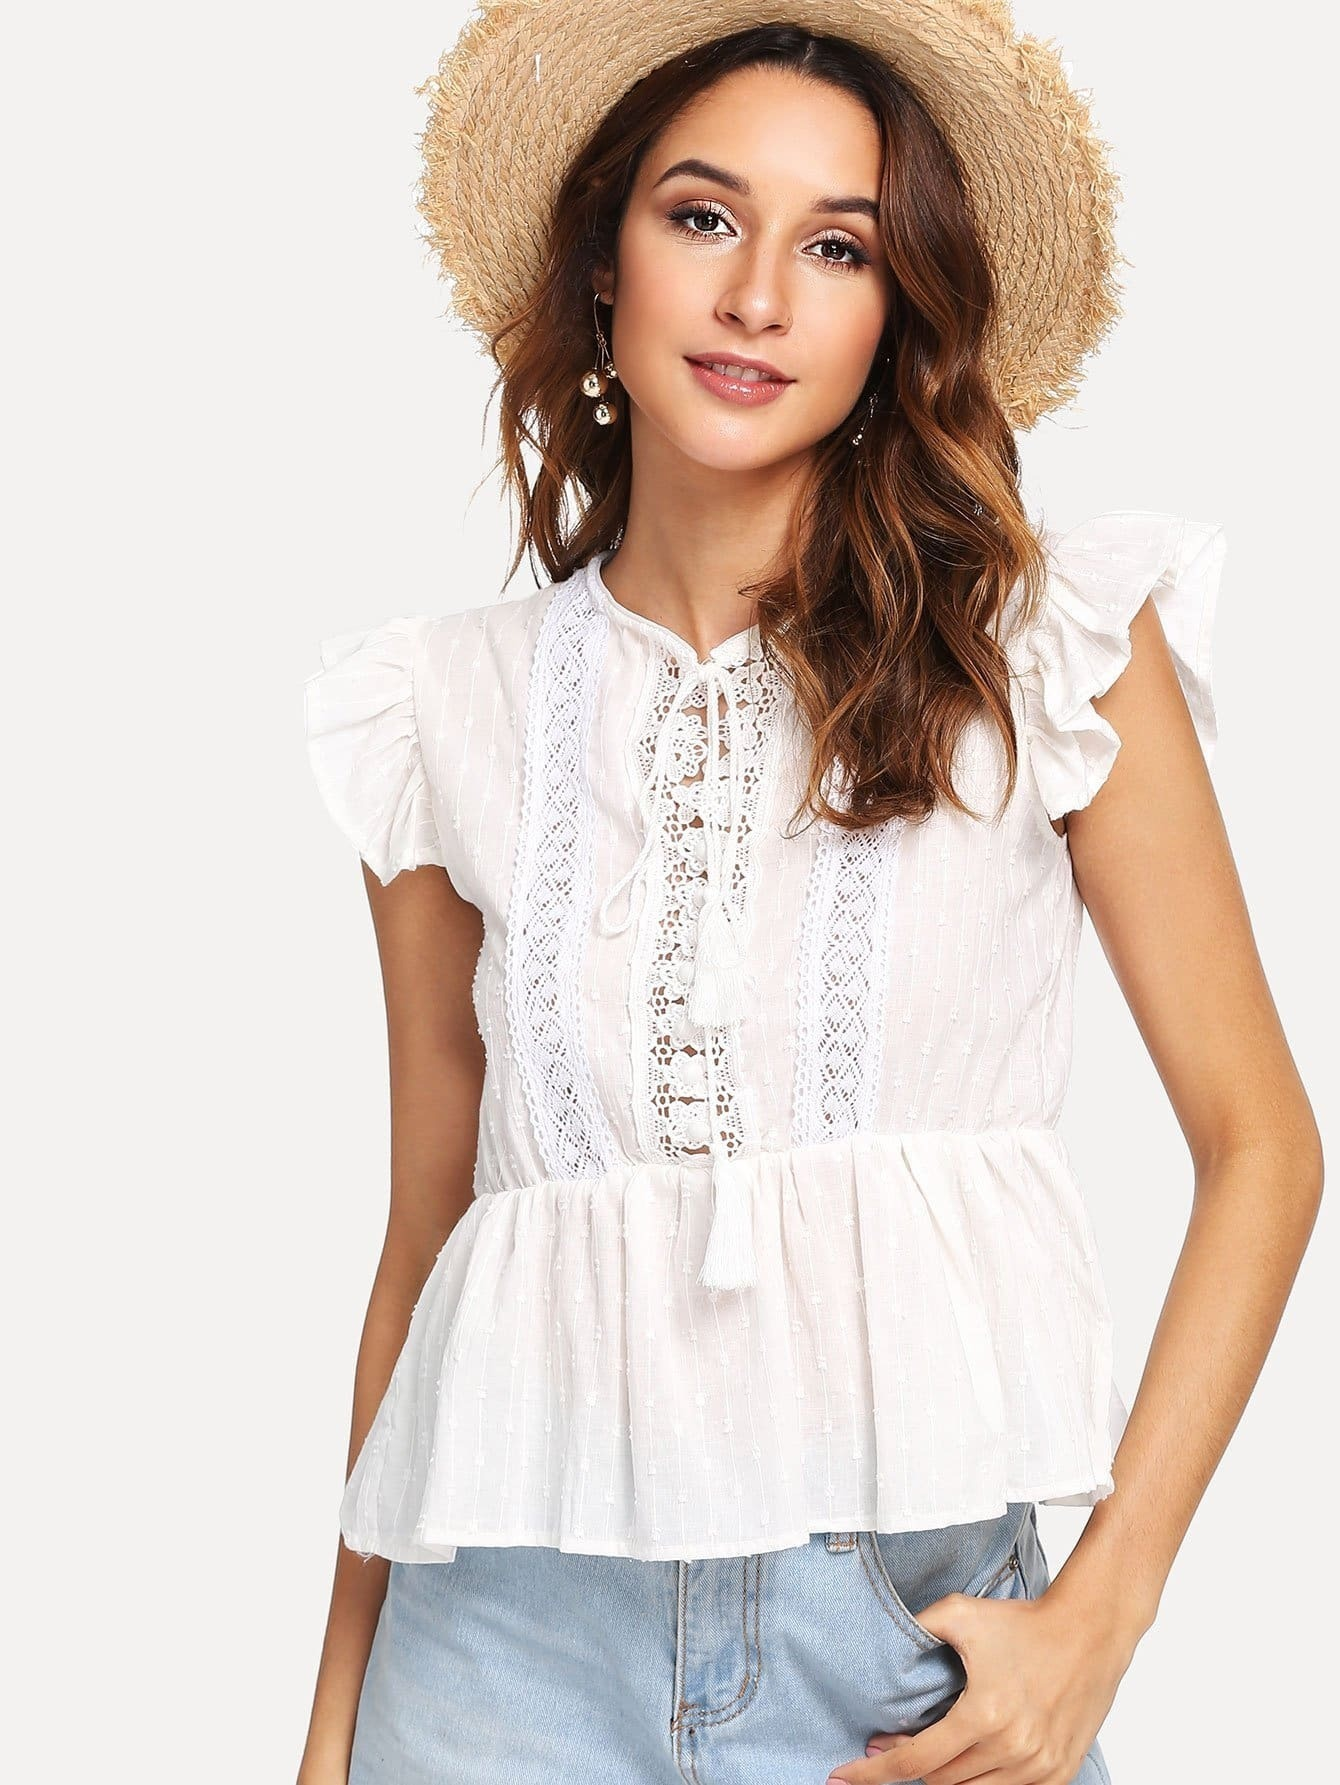 Layered Ruffle Trim Eyelet Embroidered Top mock neck eyelet embroidered ruffle top